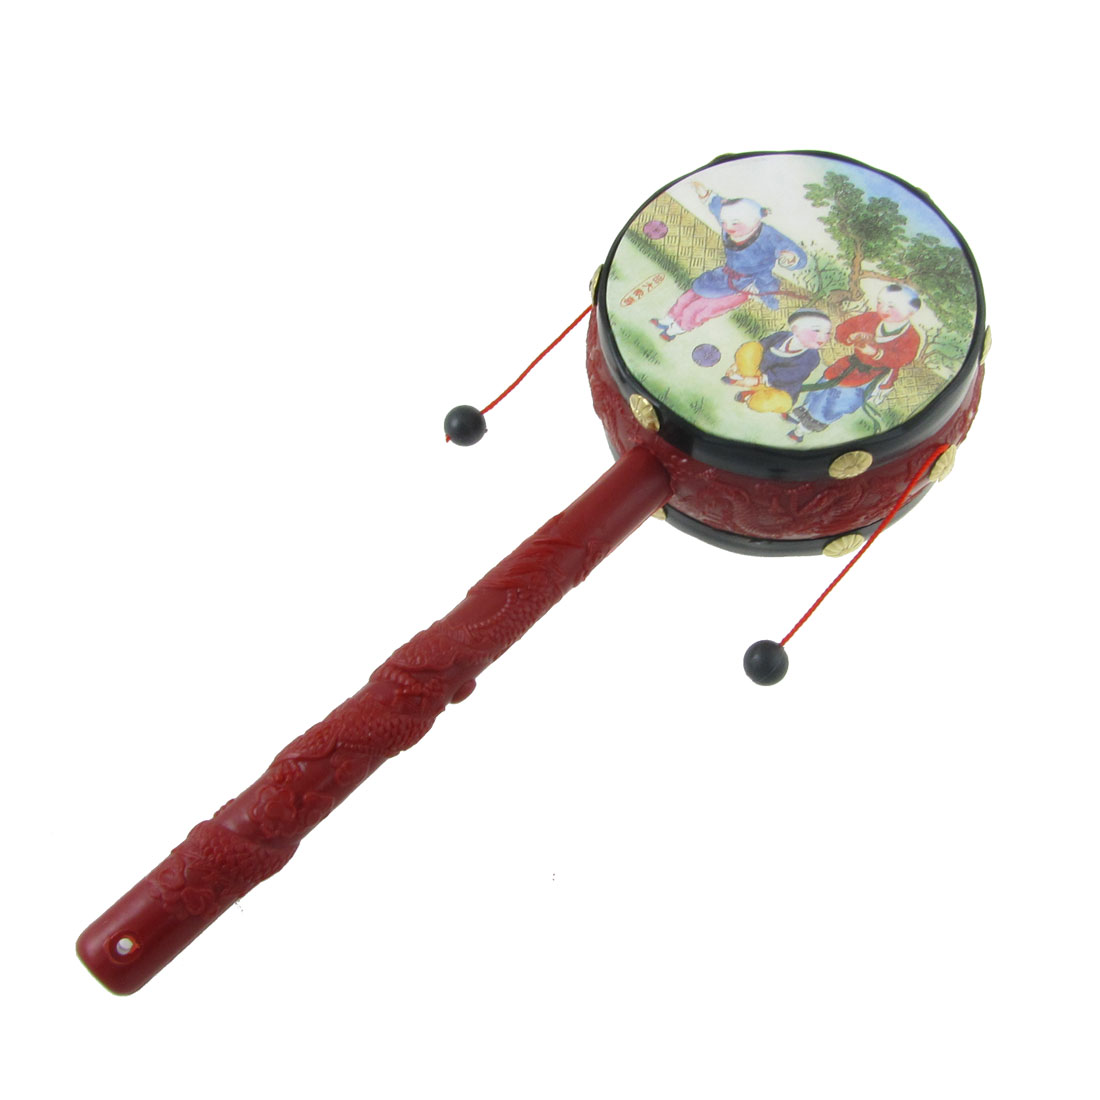 Plastic Hand Shake Music Instrument Toys Festival Rattle Drum Spin for Home Decor